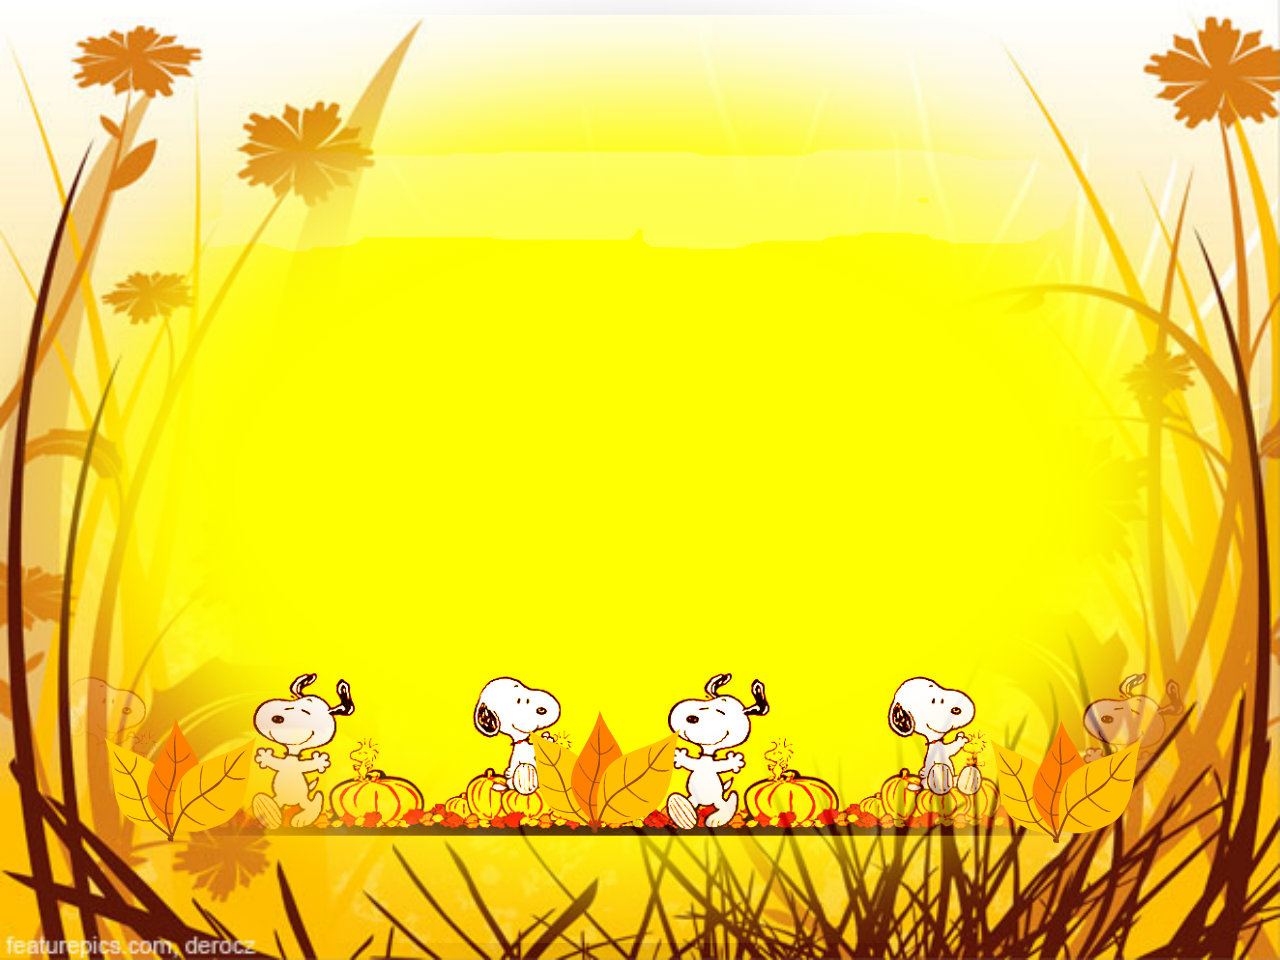 Snoopy Wallpaper Images amp